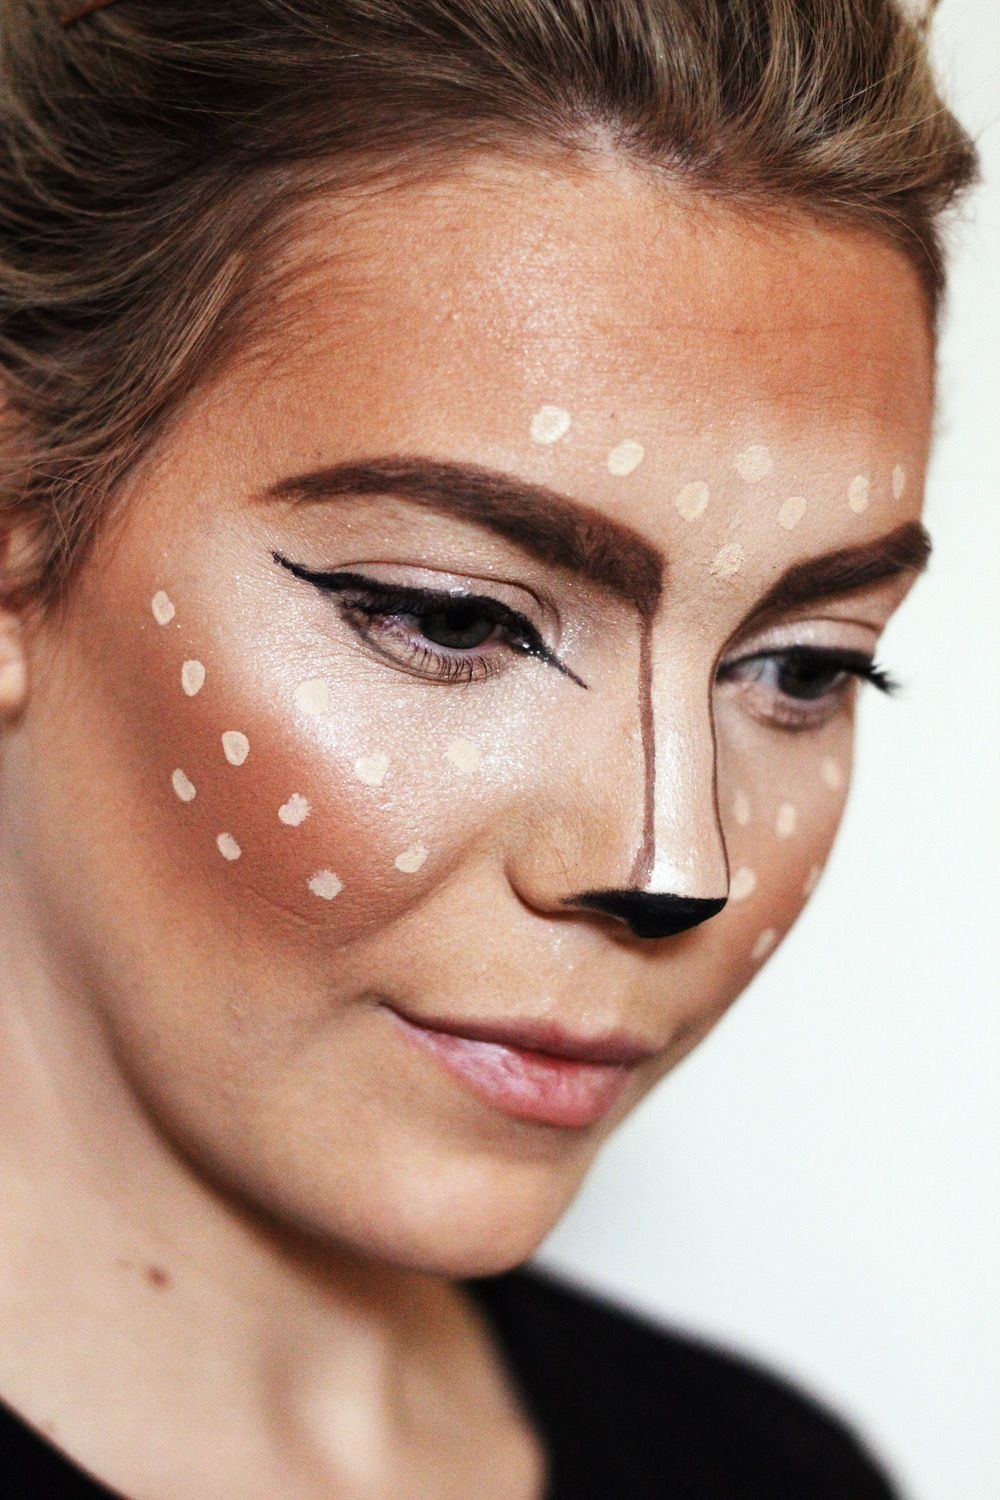 Deer Makeup Tutorial Last minute Halloween costume. Cute